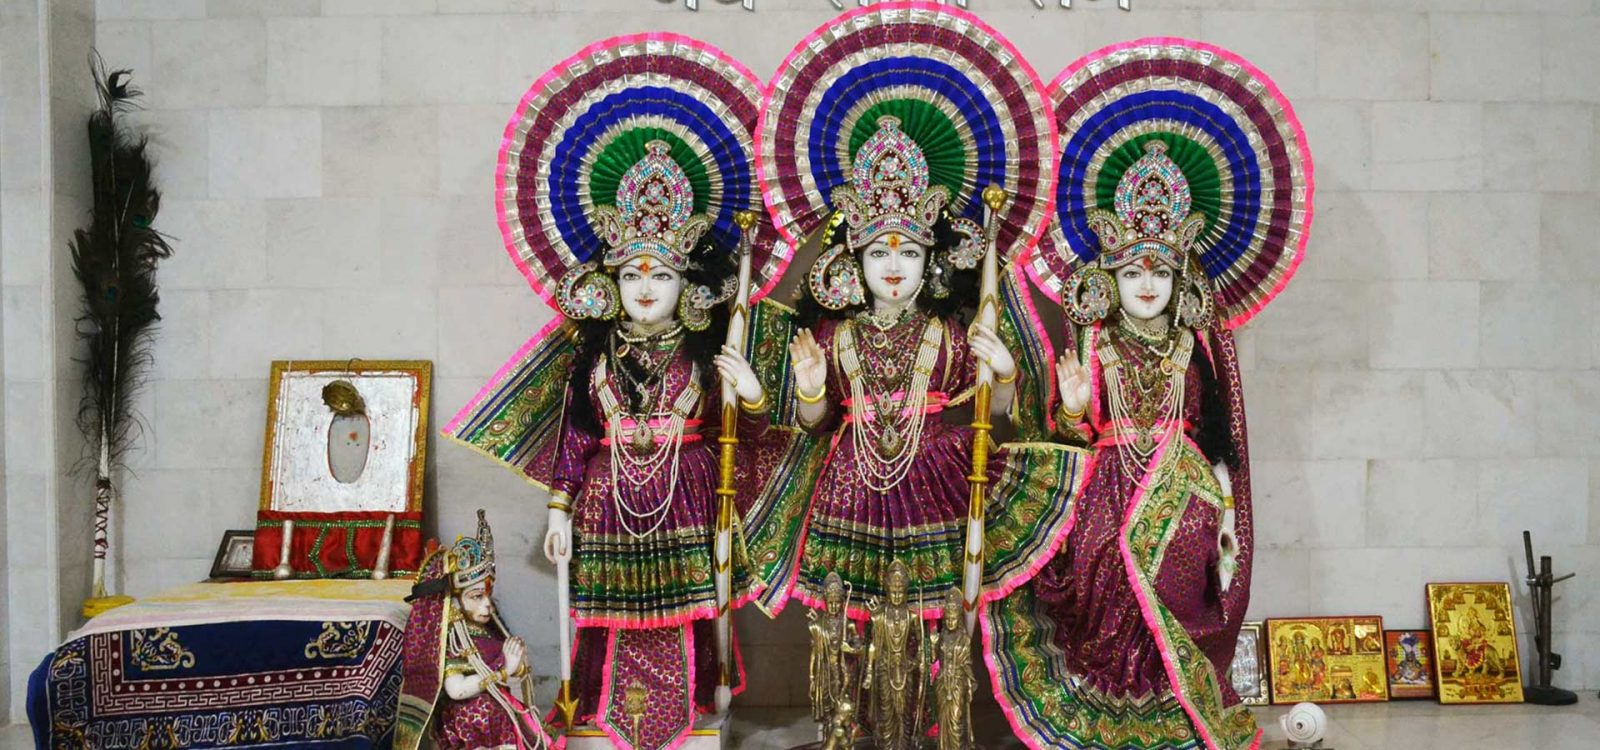 Where to stay at Mehandipur Balaji,hotels in mehandipur balaji, dharmshala in mehandipur balaji, hotels in mehandipur balaji / dharmshala in mehandipur balaji, guest house in mehandipur balaji